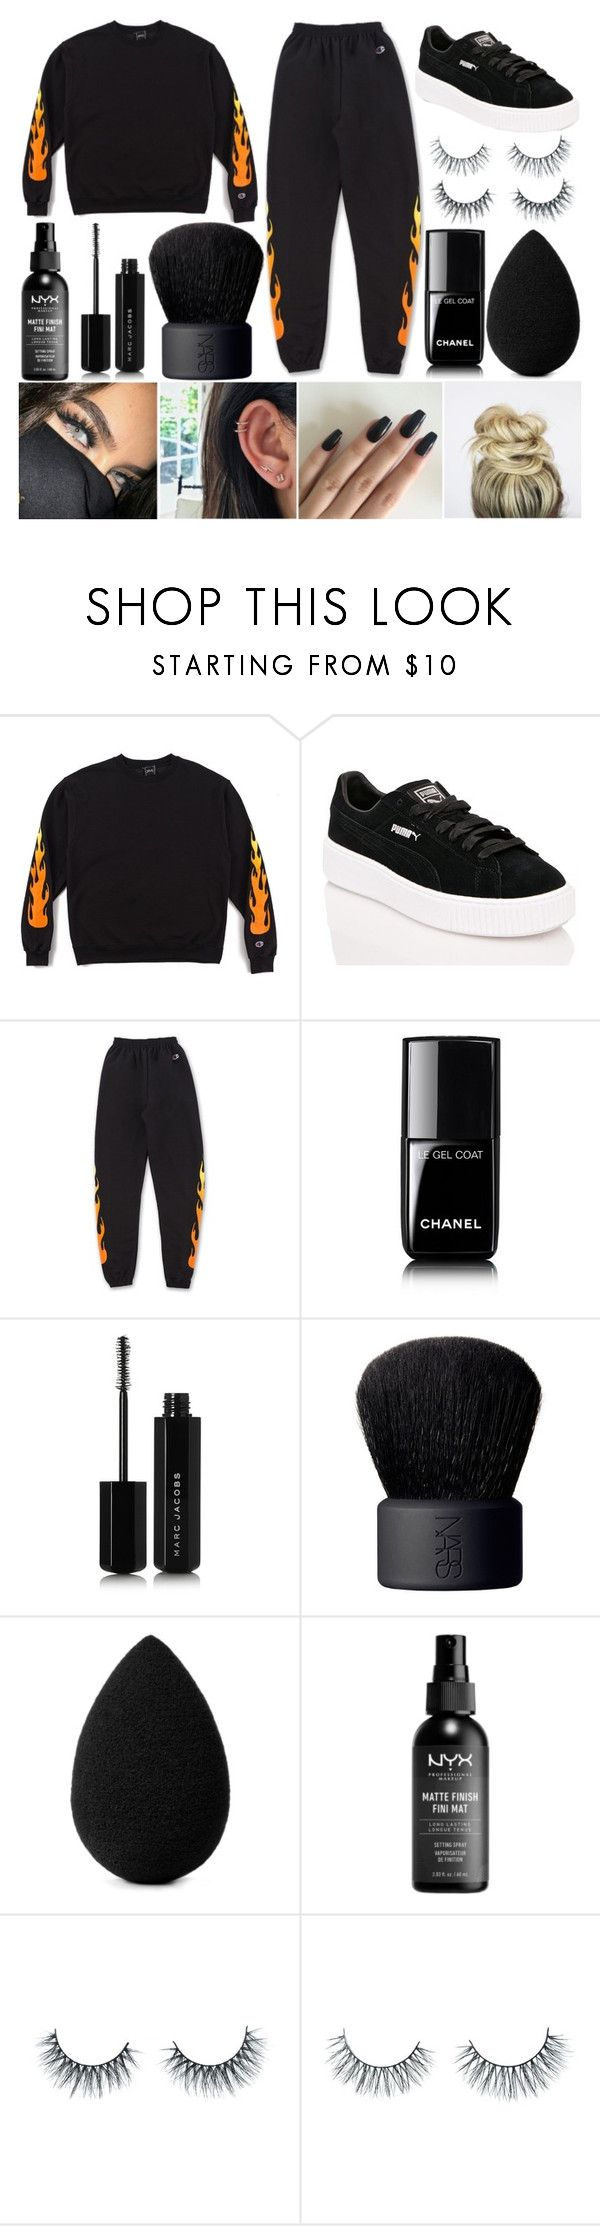 """Chill Day"" by susanna-trad on Polyvore featuring Puma, Chanel, Marc Jacobs, NARS Cosmetics, beautyblender and Unicorn Lashes"